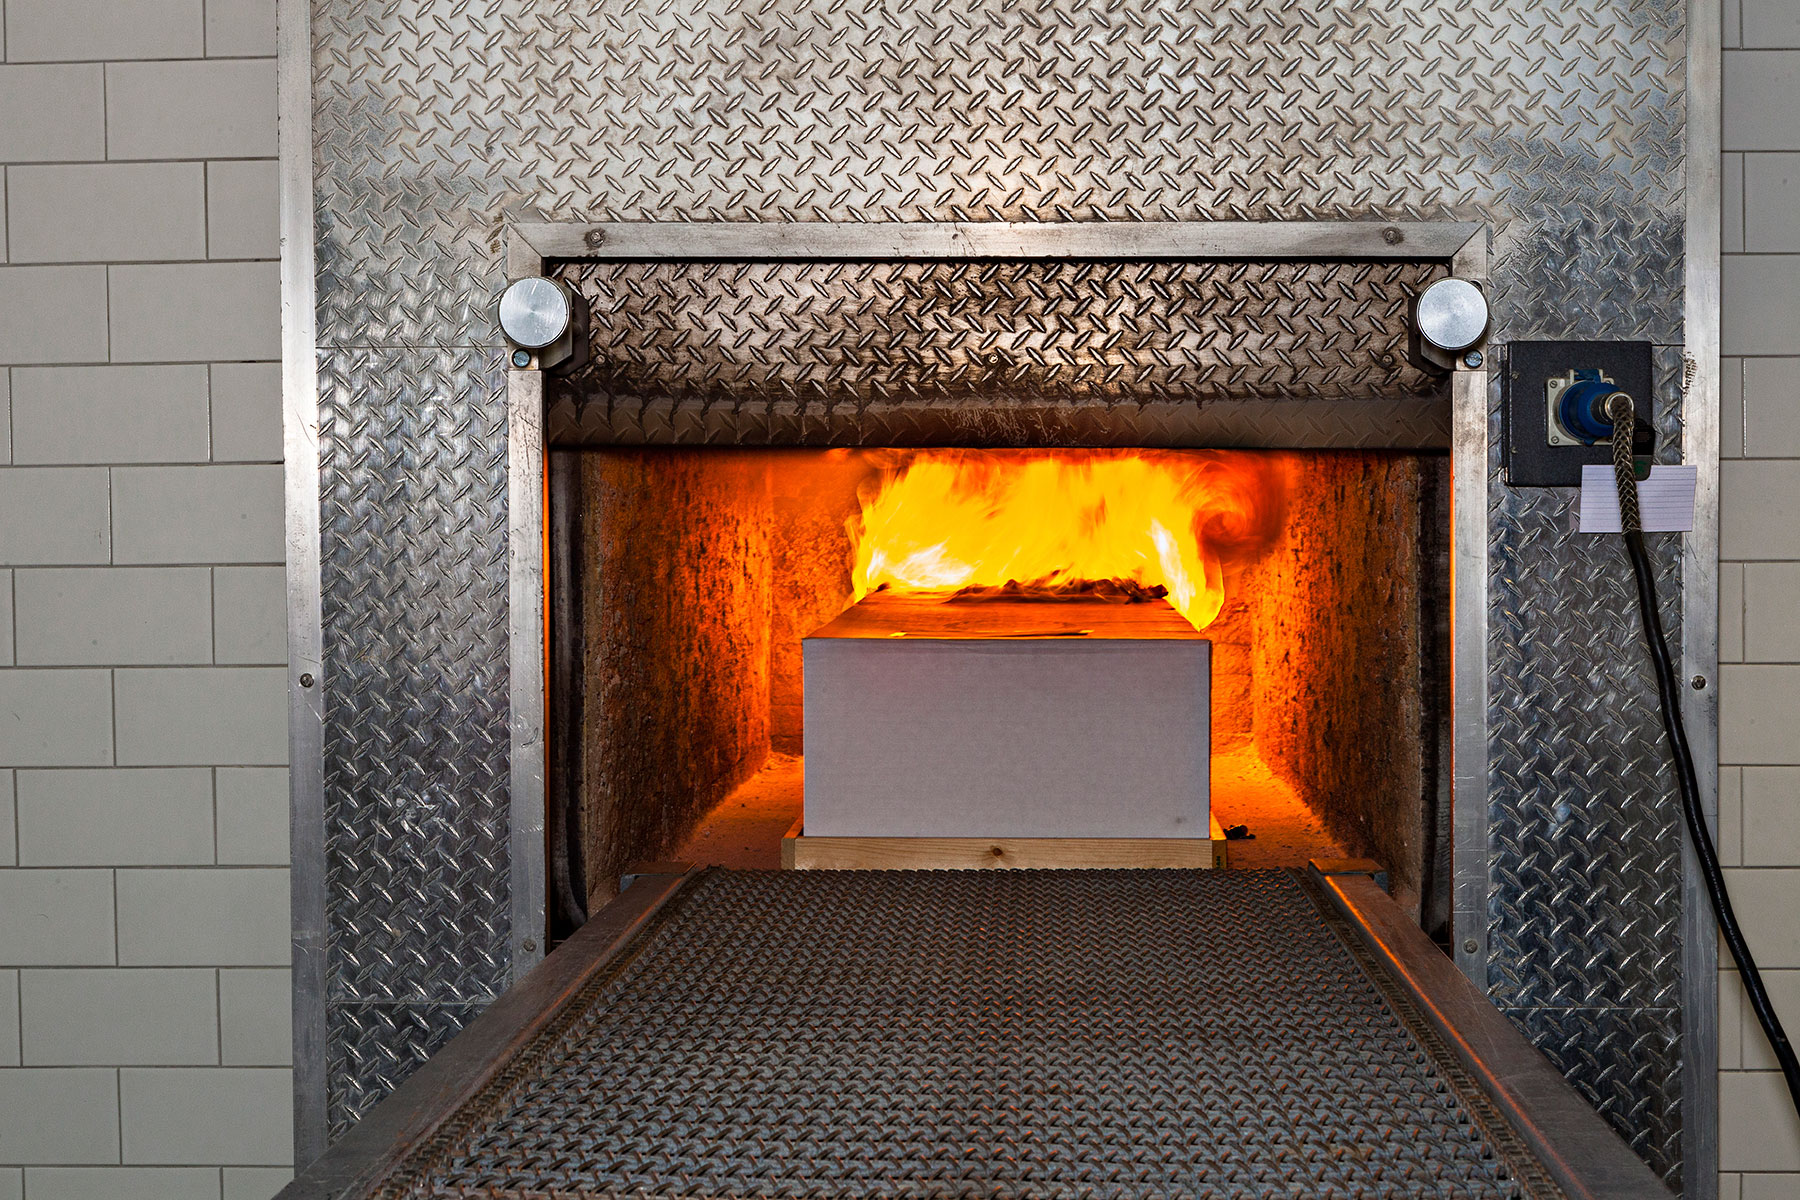 A body in the fire-based crematory oven of Lakewood Cemetery.